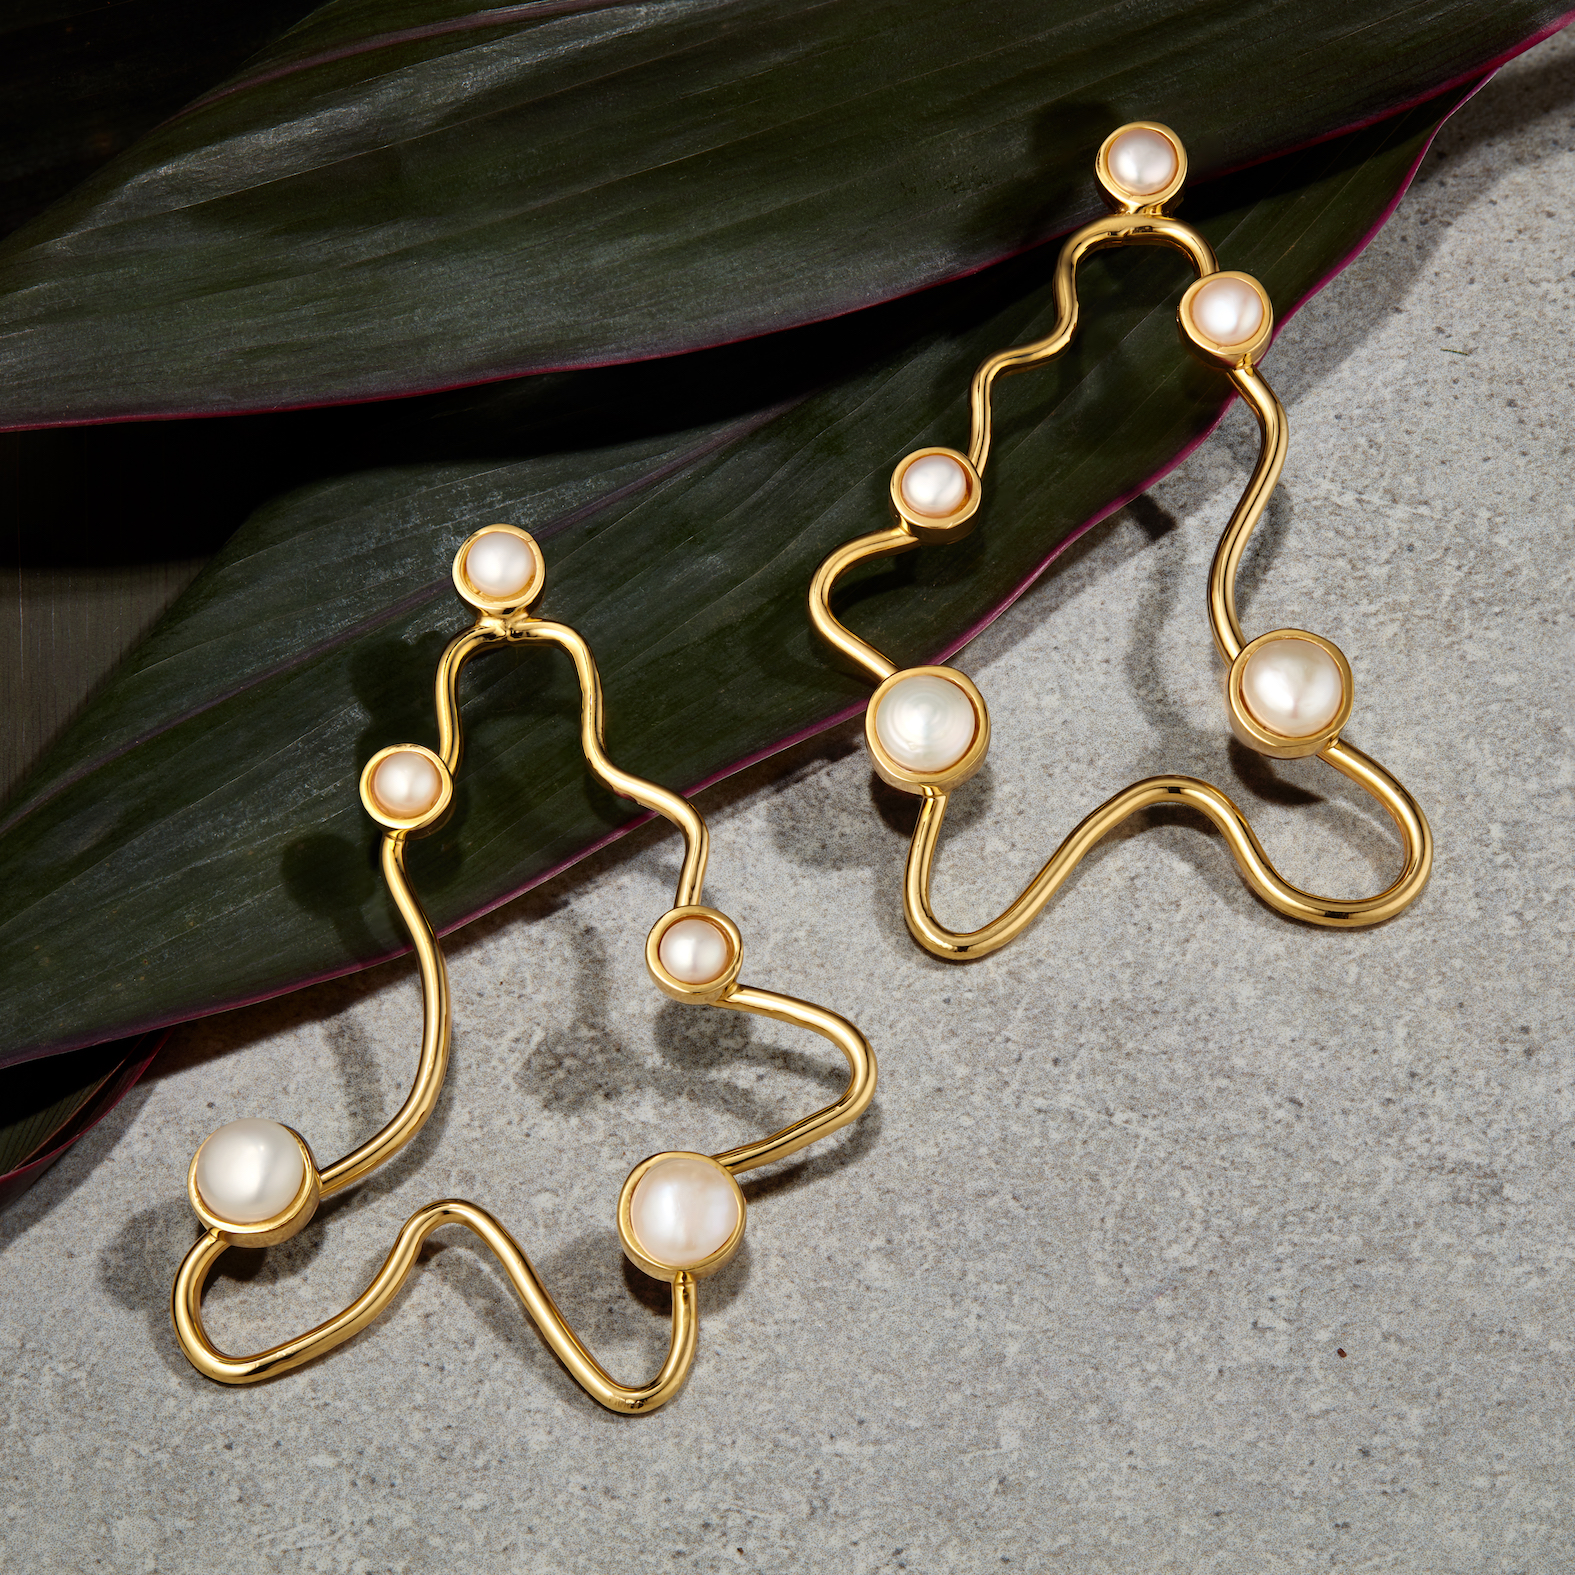 Nay Pearl Earrings by Jill Hopkins Jewellery on curated-crowd.com